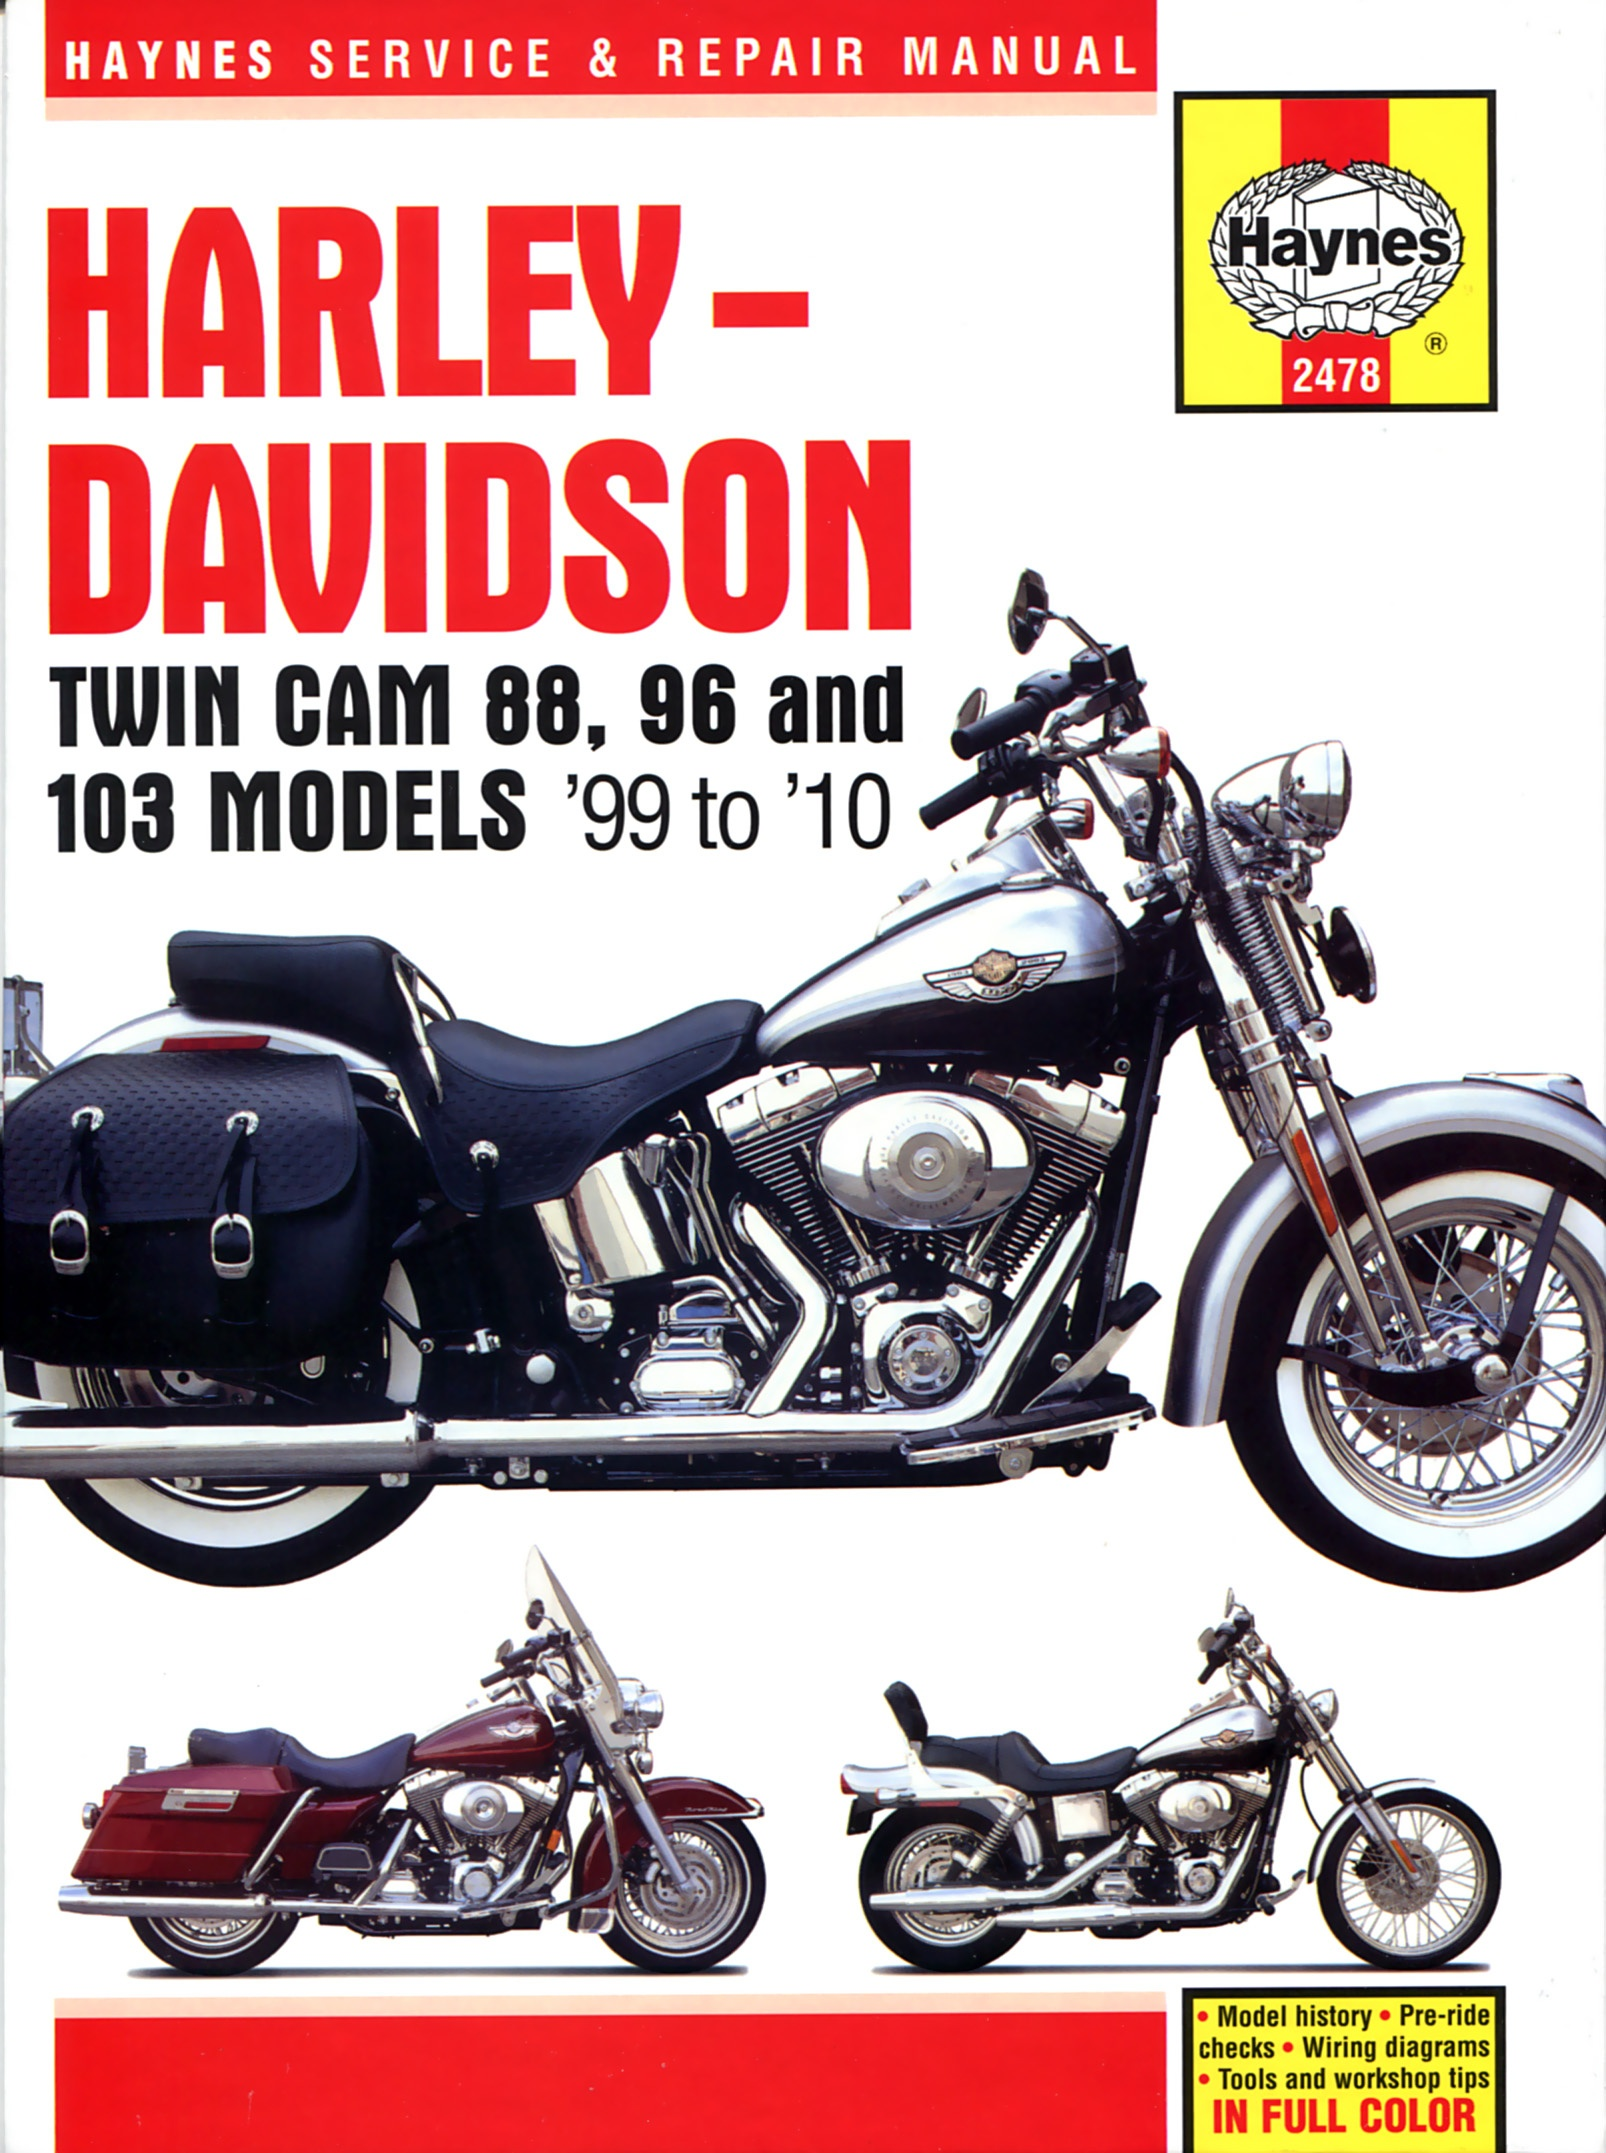 Harley Davidson Heritage Owners Manal